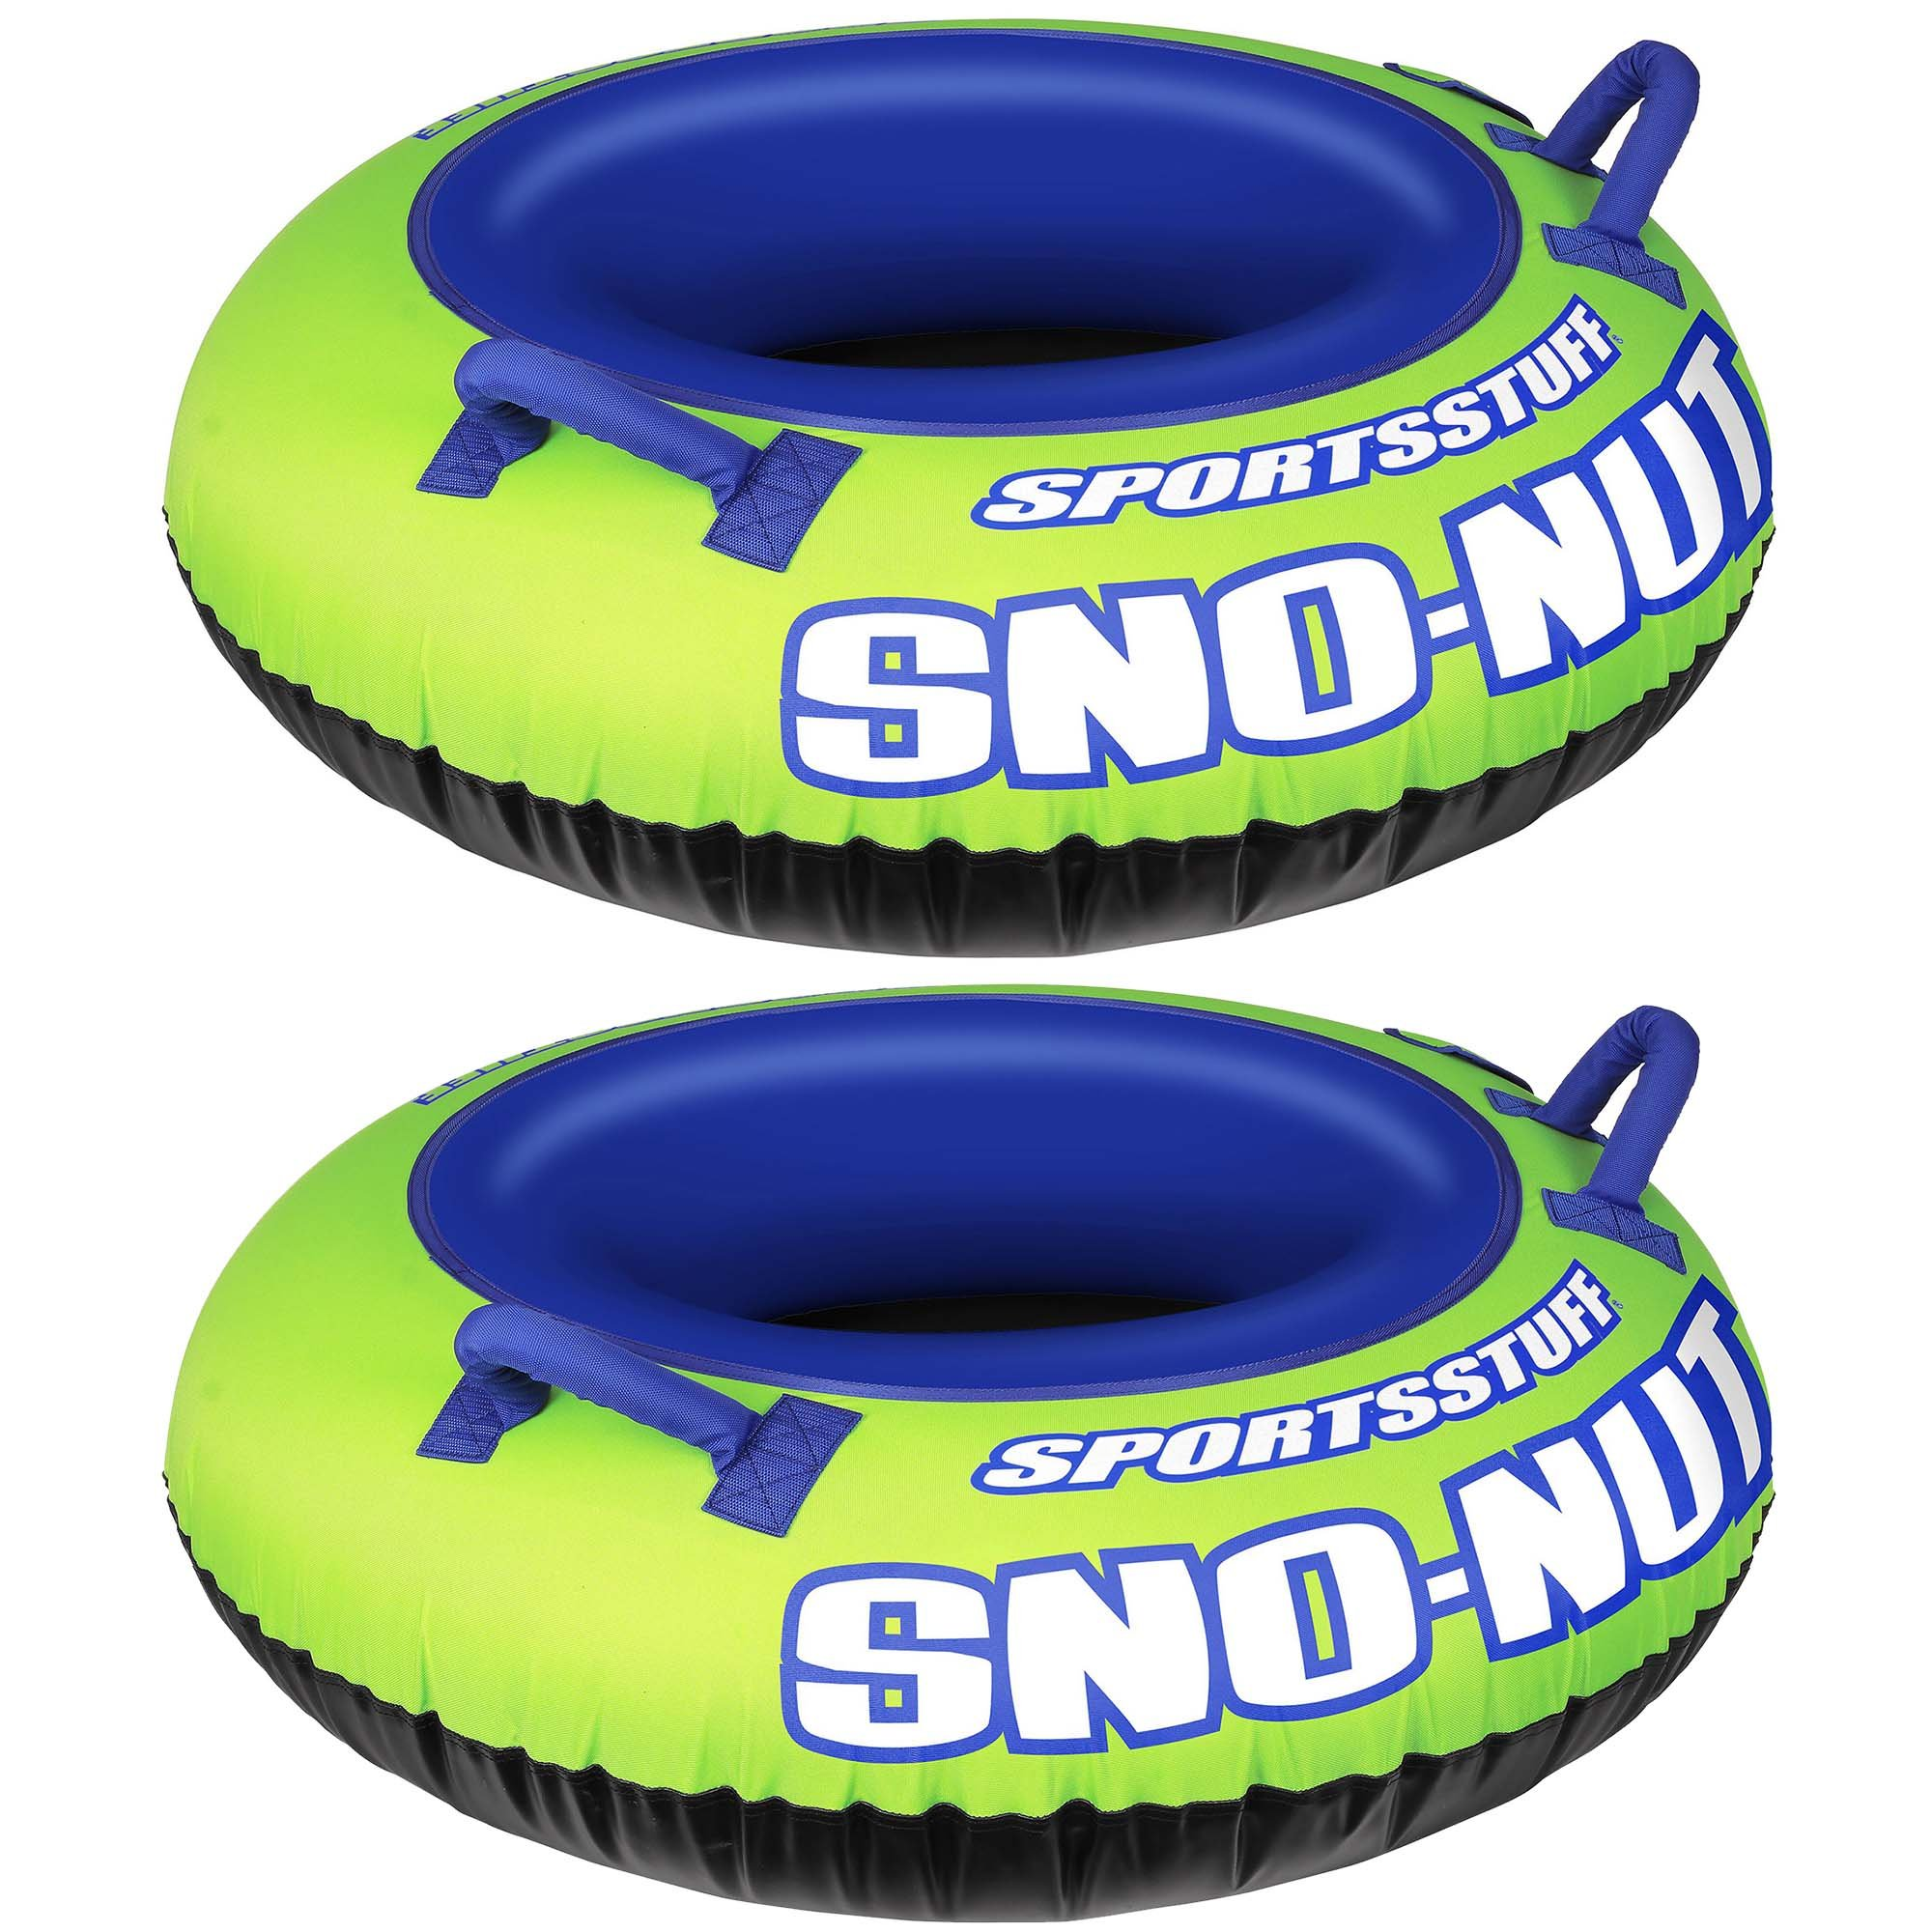 Sportsstuff Inflatable 48-Inch Sno-Nut Snow Tube with Foam Handles (2 Pack) by Kwik Tek